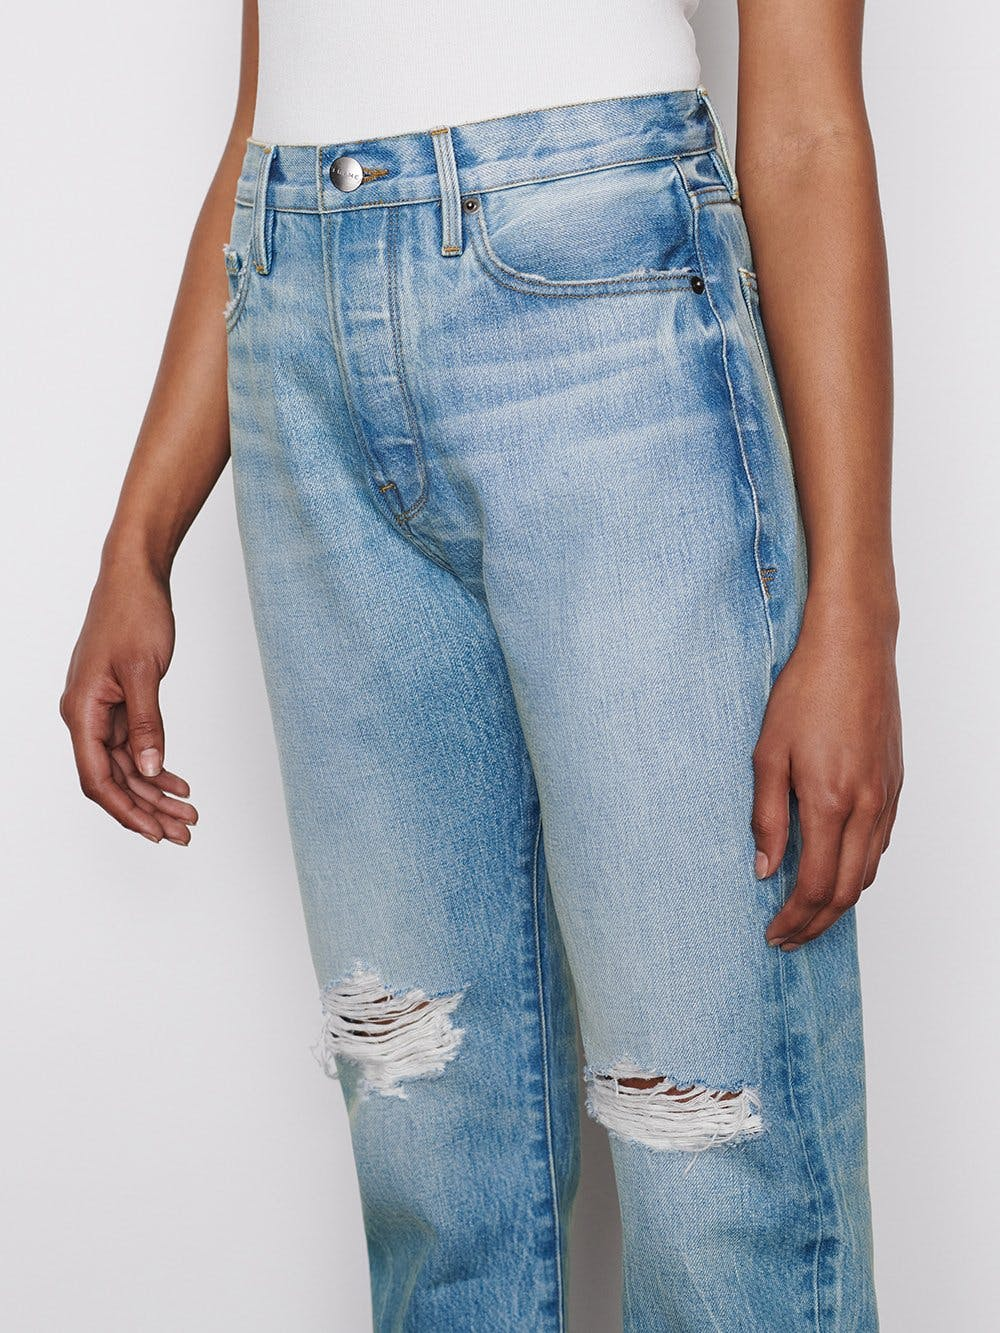 jeans side detail view